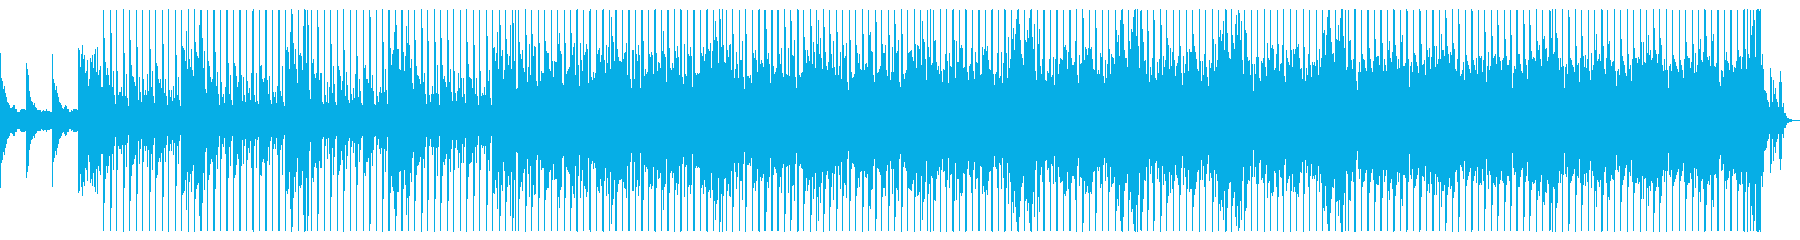 Everyday refreshing and relaxing everyday pop songs's reproduced waveform